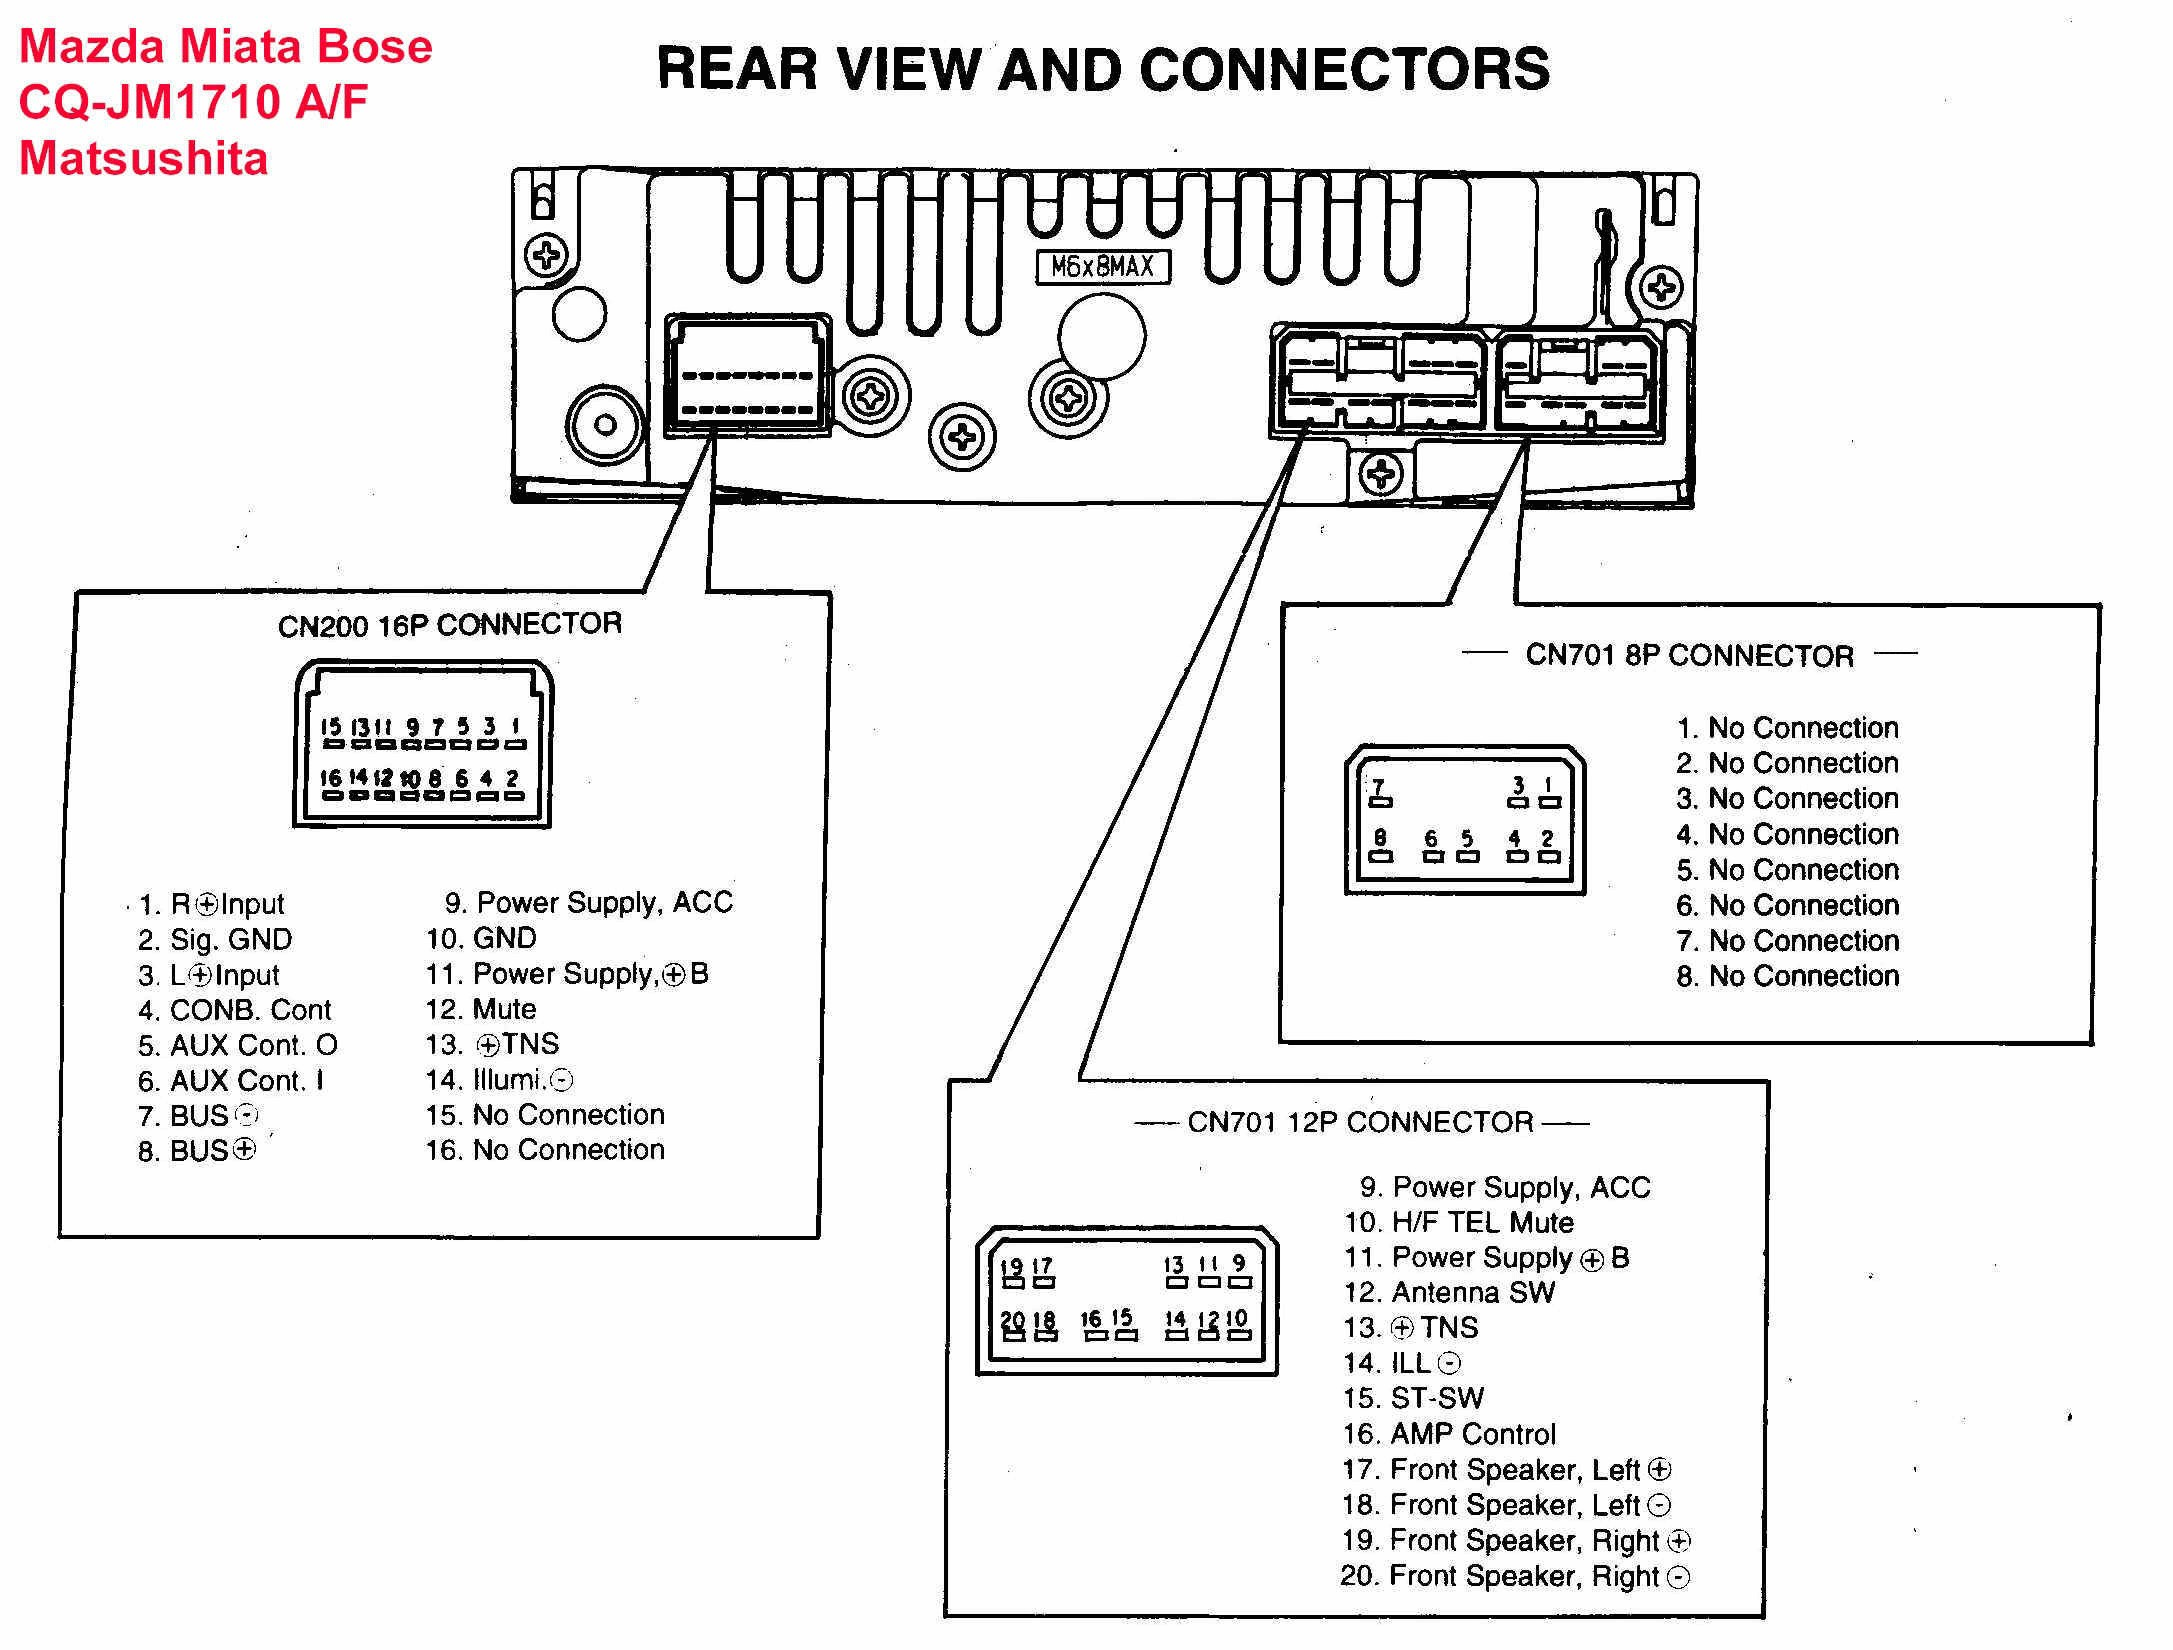 330 Radio Wiring Diagram Nissan Serena Wiring Resources